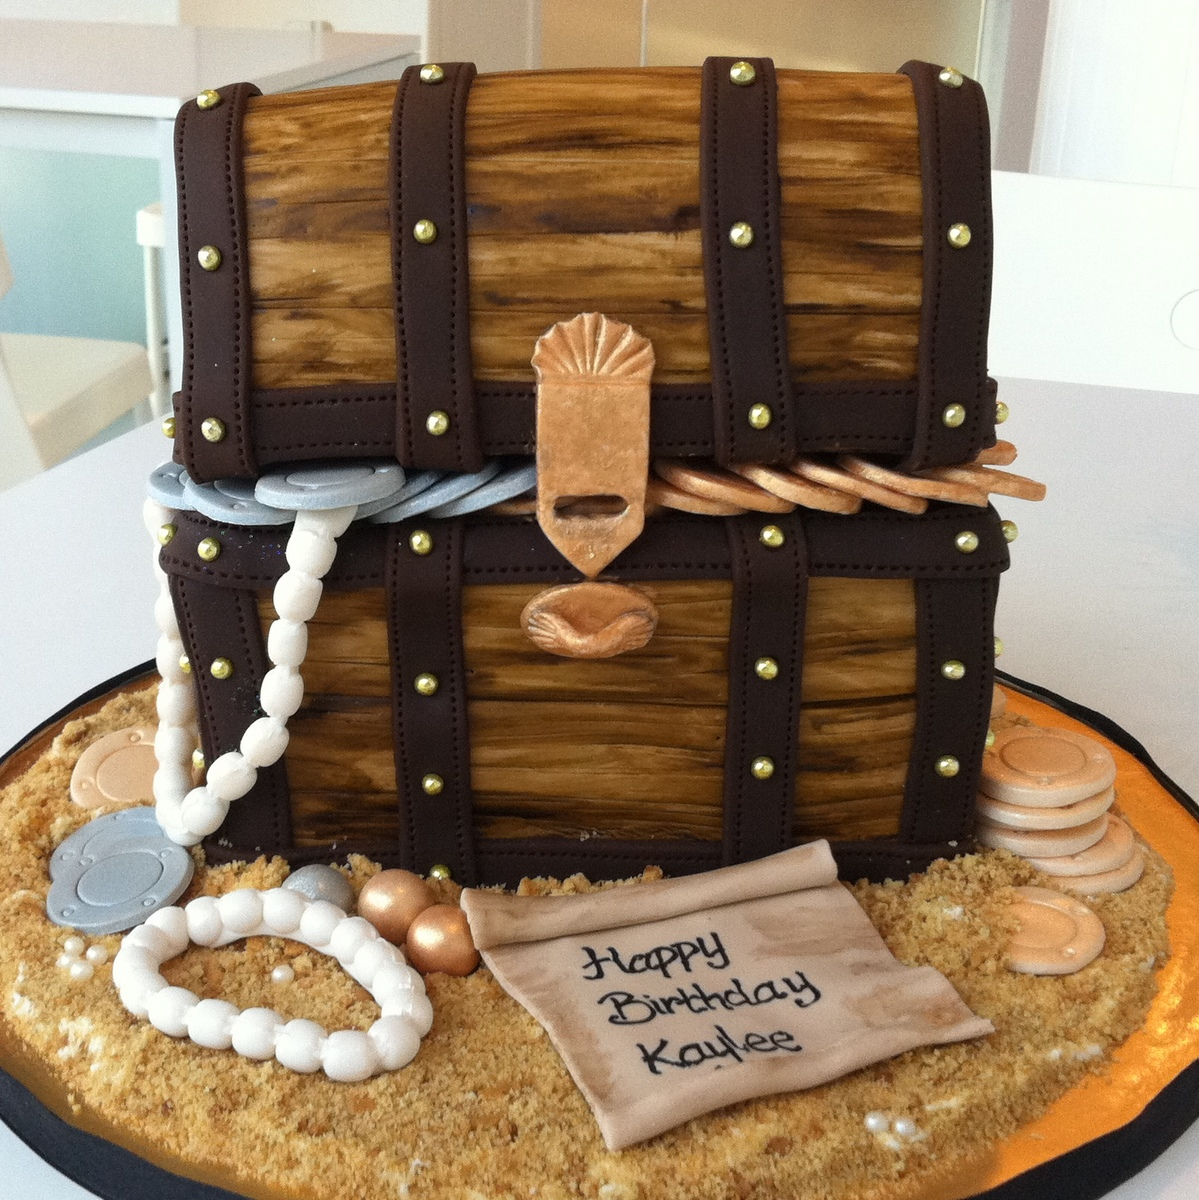 Tearoom By Bel Jee Treasure Chest Cake